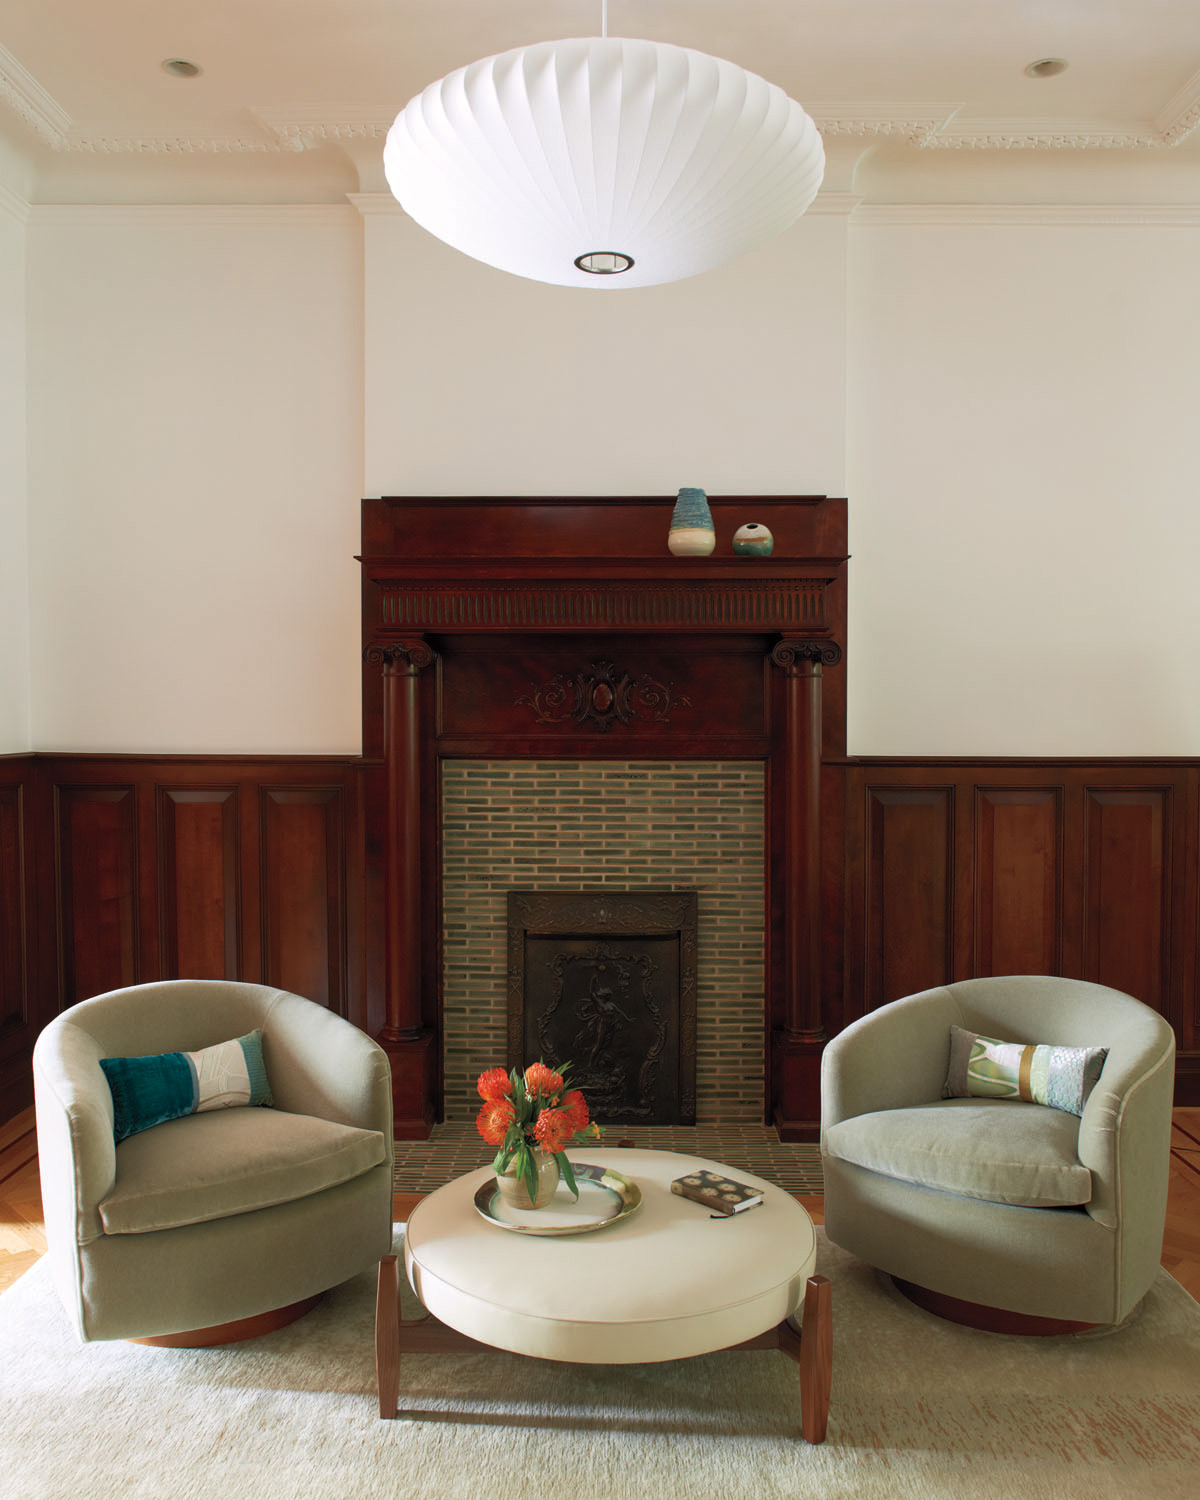 Brooklyn architect carefully restored fireplace